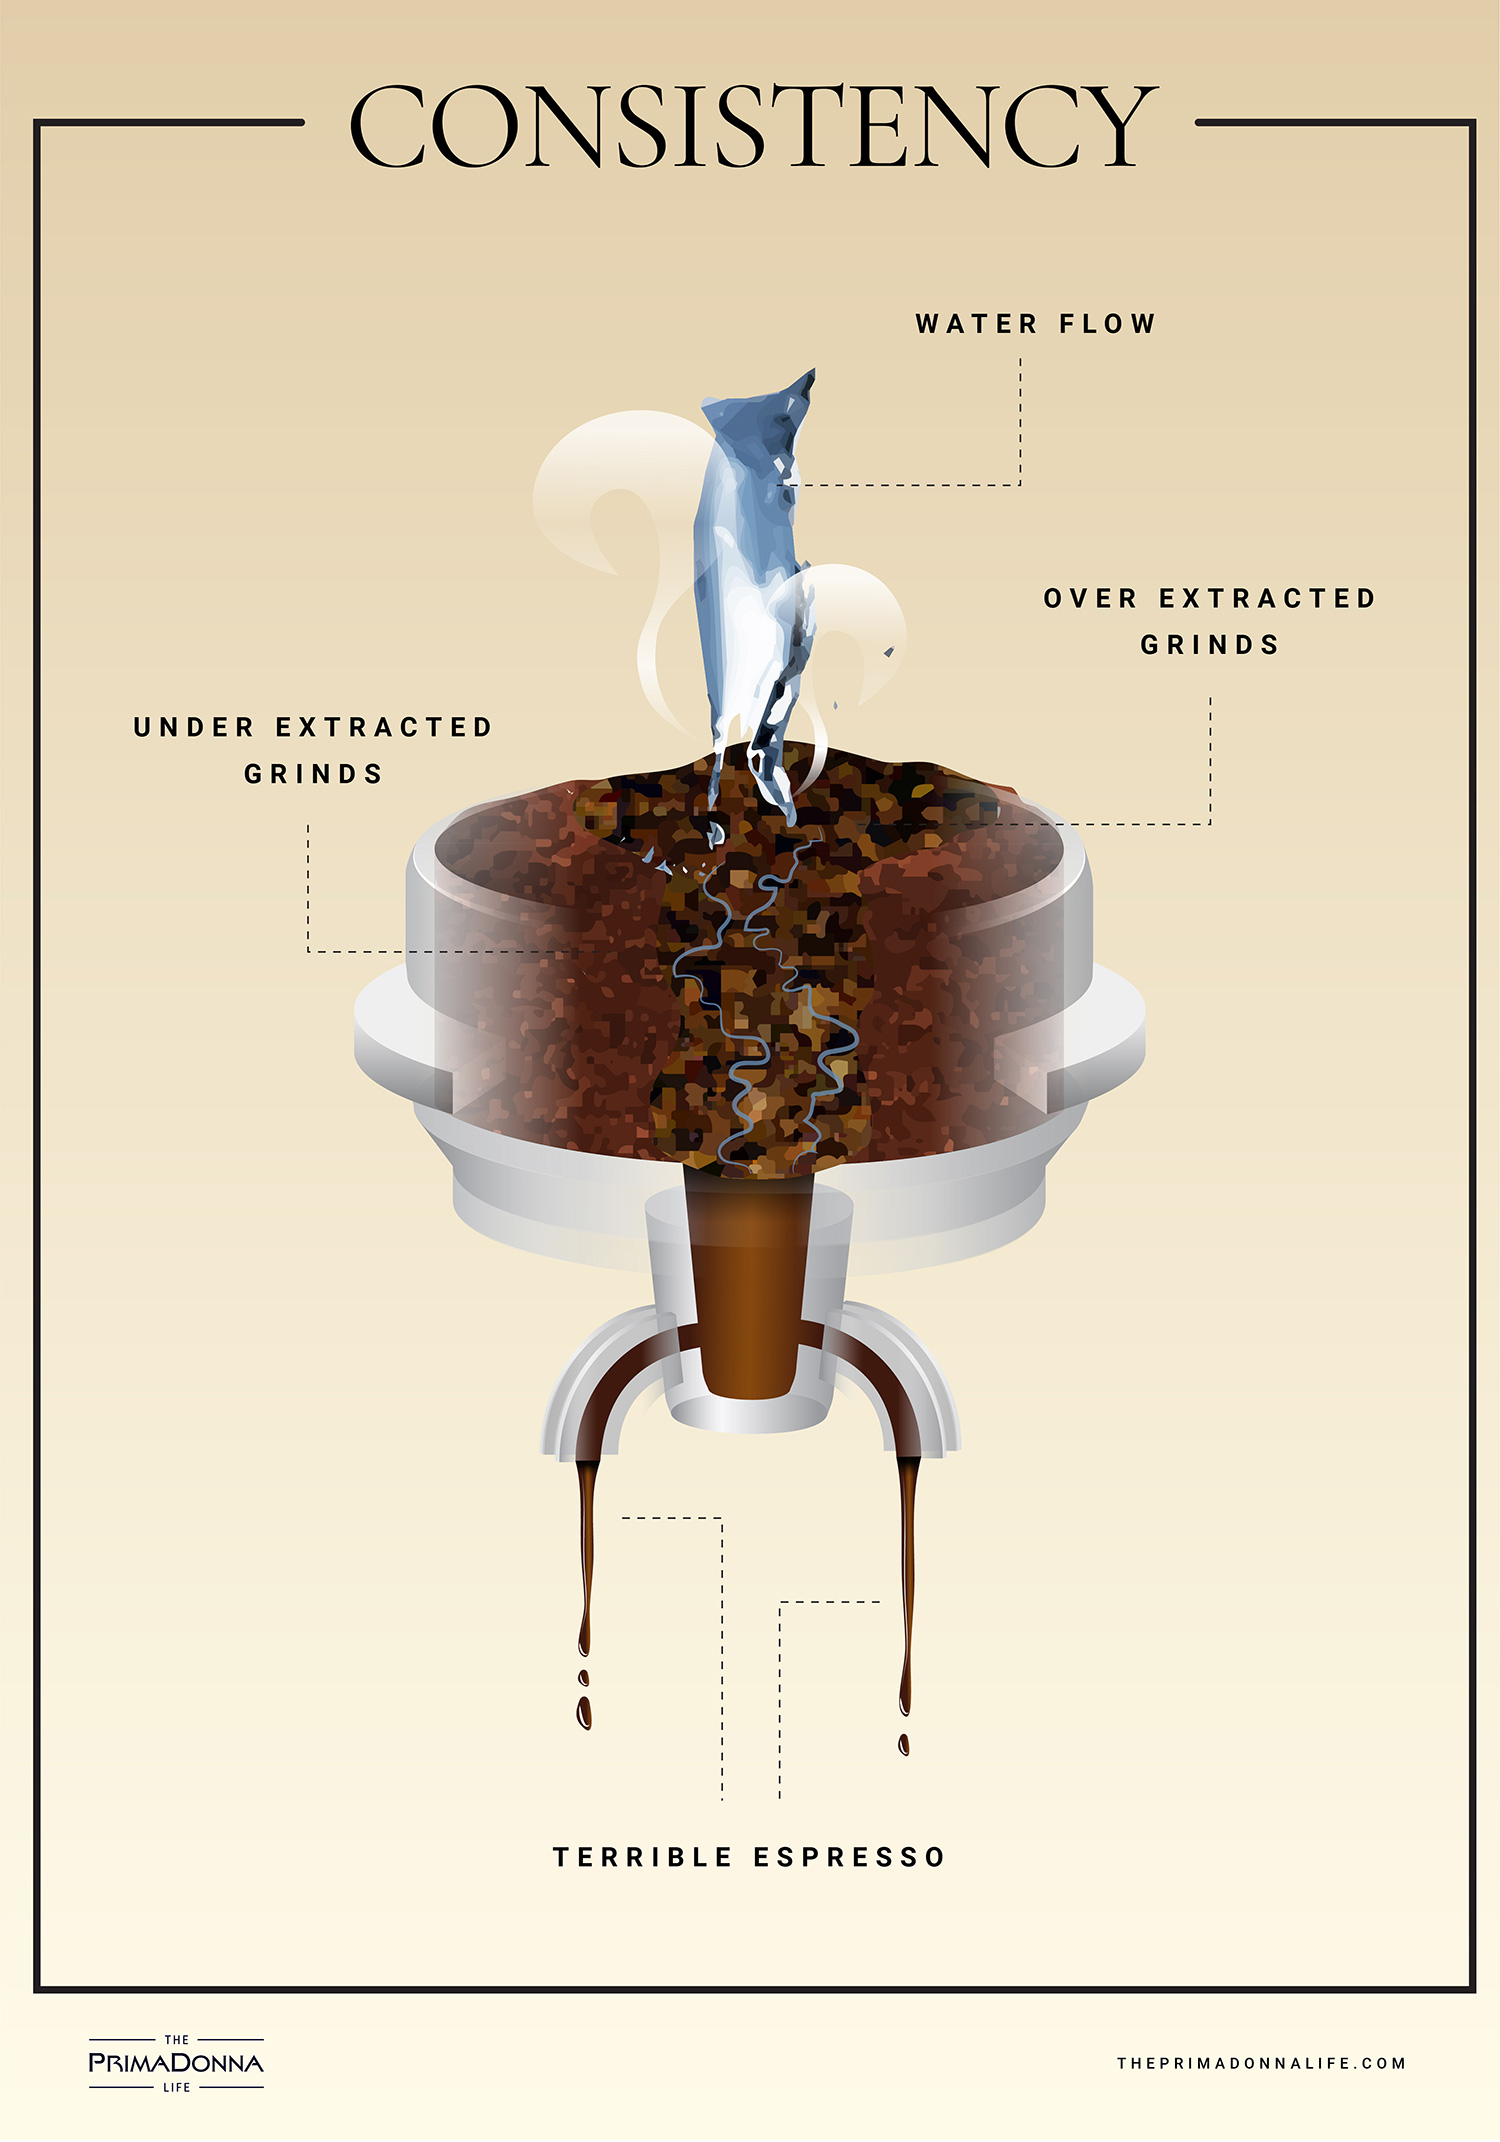 An infographic showing how water flows through ground coffee